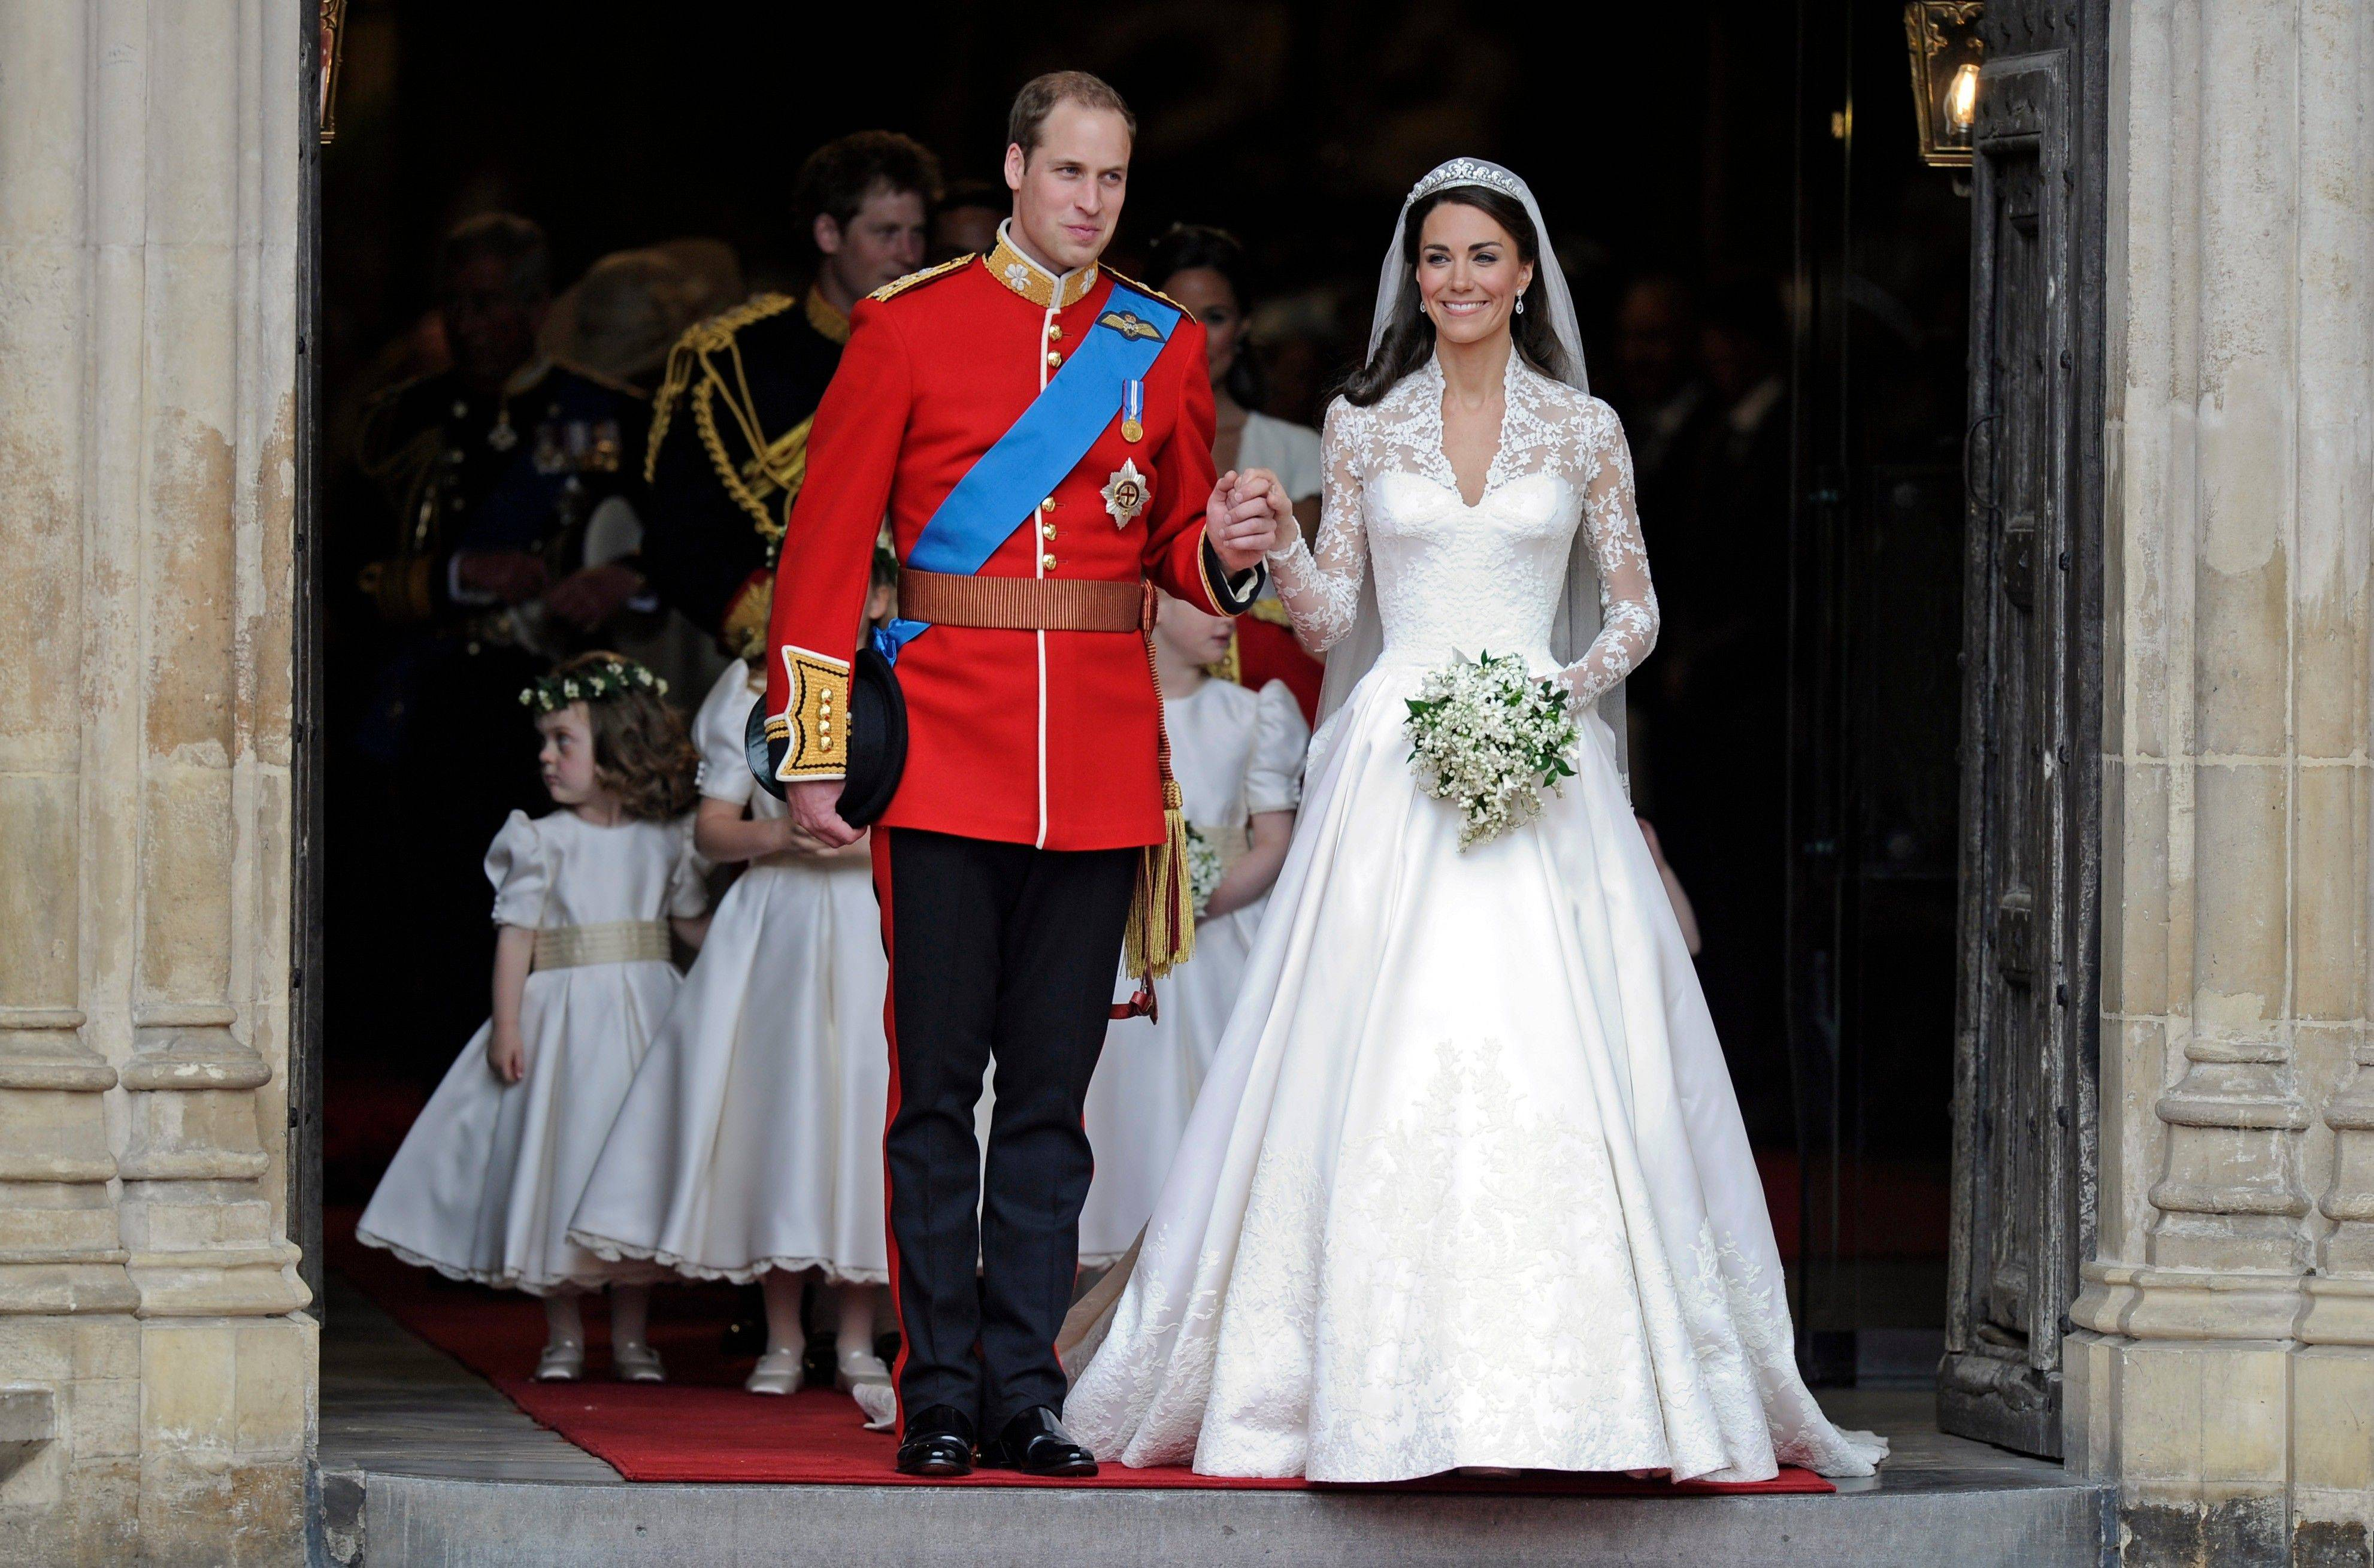 Britain's Prince William and his wife Kate, Duchess of Cambridge stand outside of Westminster Abbey after their Royal Wedding in London Friday, April, 29, 2011.